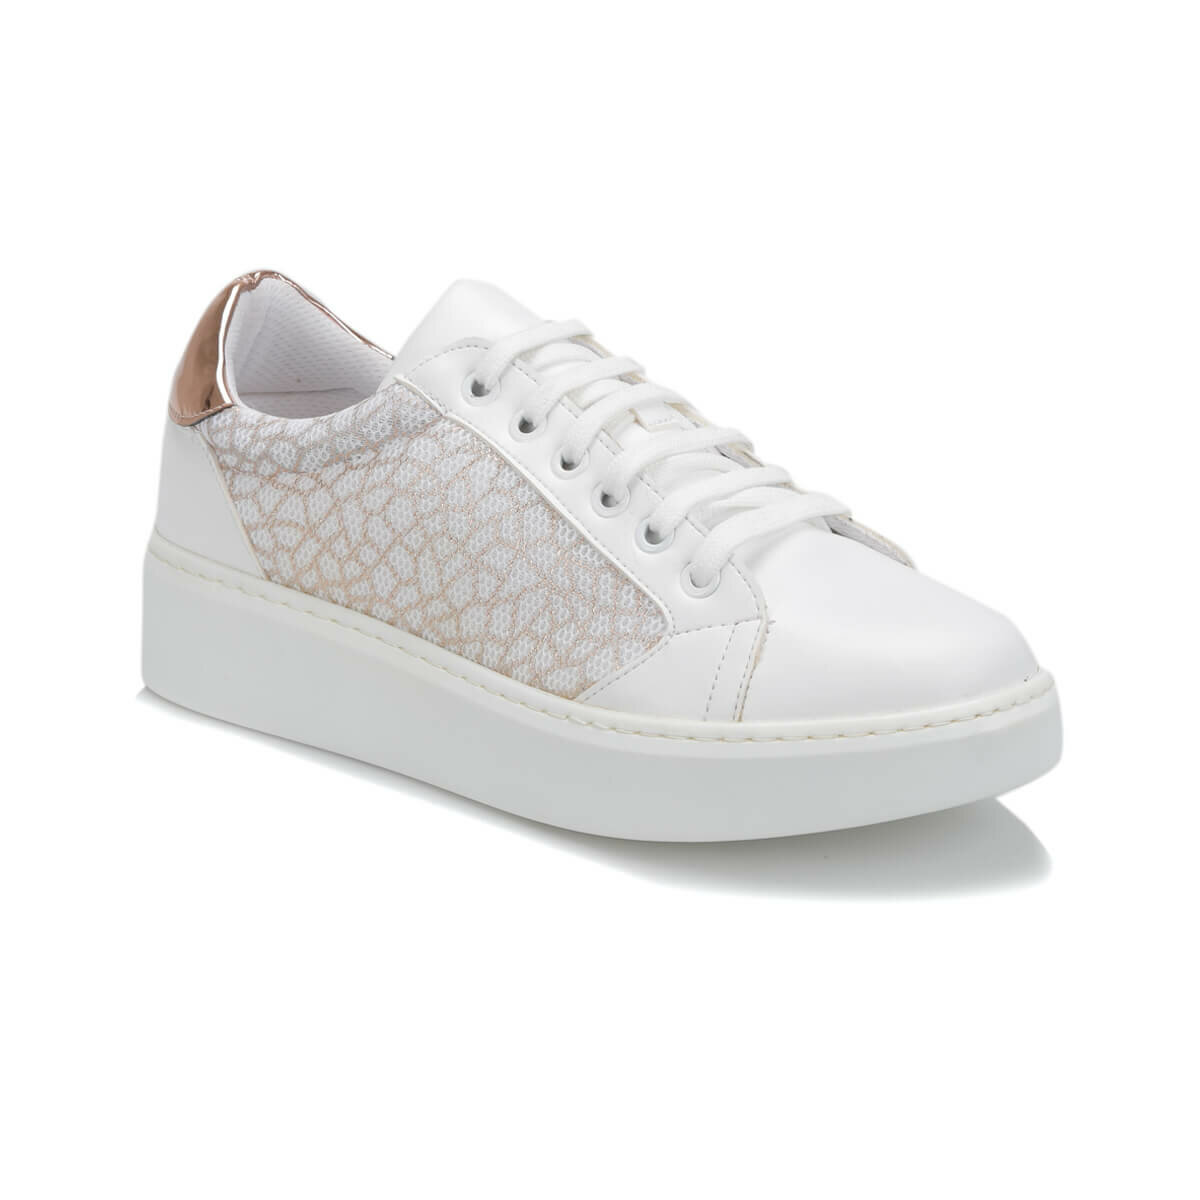 FLO 19S-004 Rose Gold Women 'S Sneaker Shoes BUTIGO